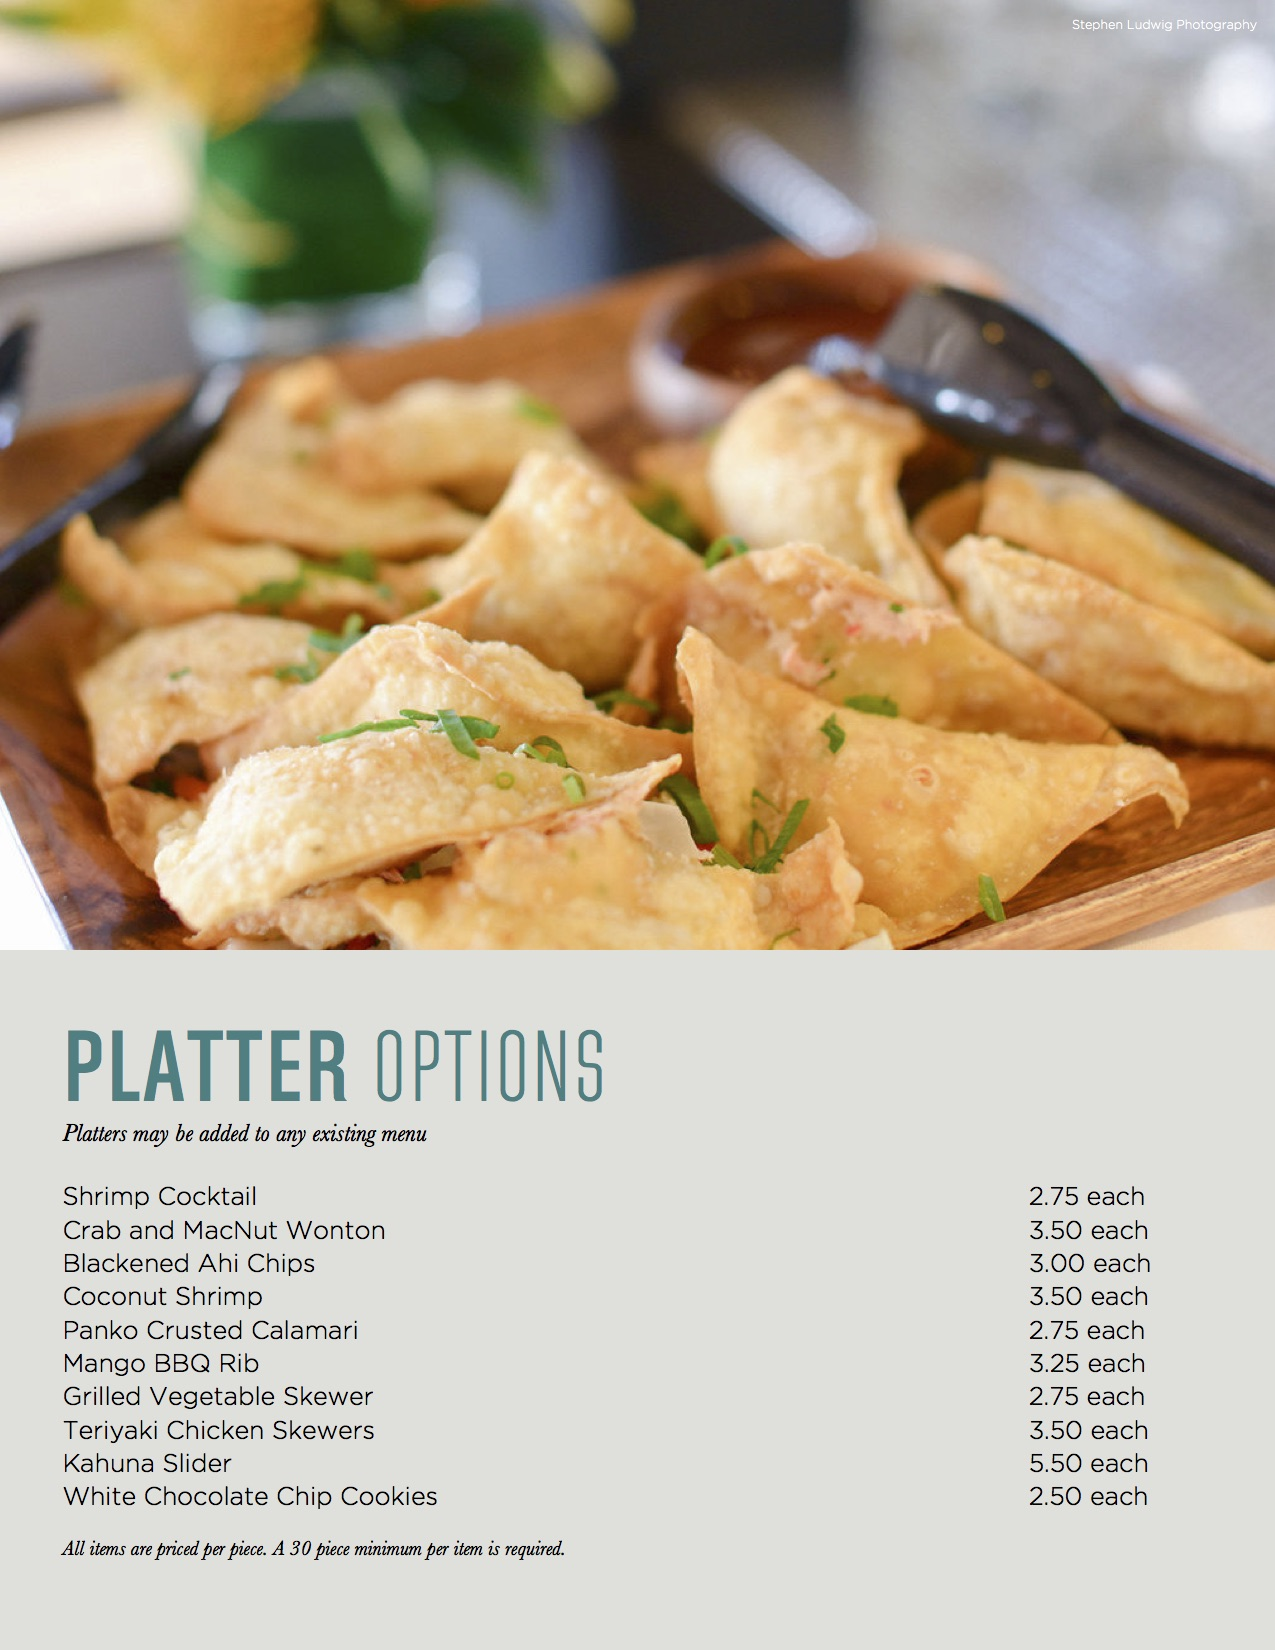 Platter options menu